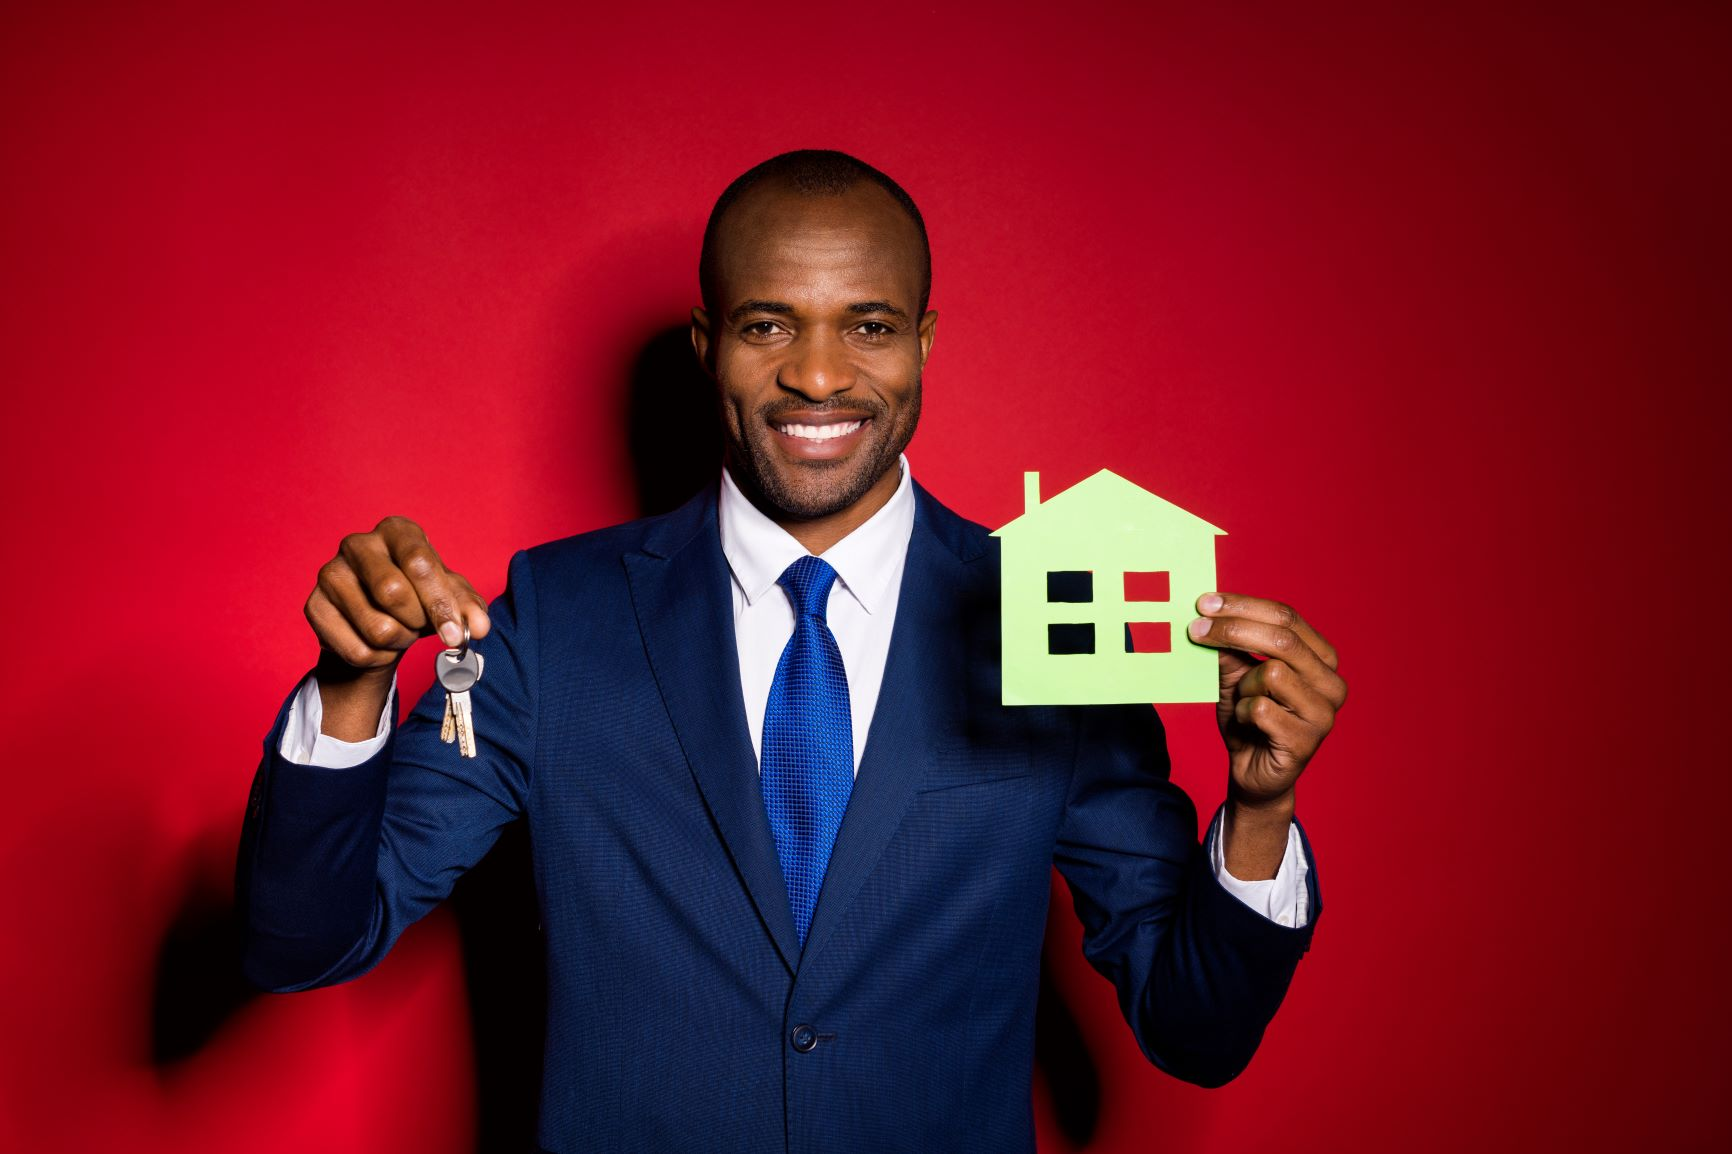 Real Estate Courses Every Realtor Should Take